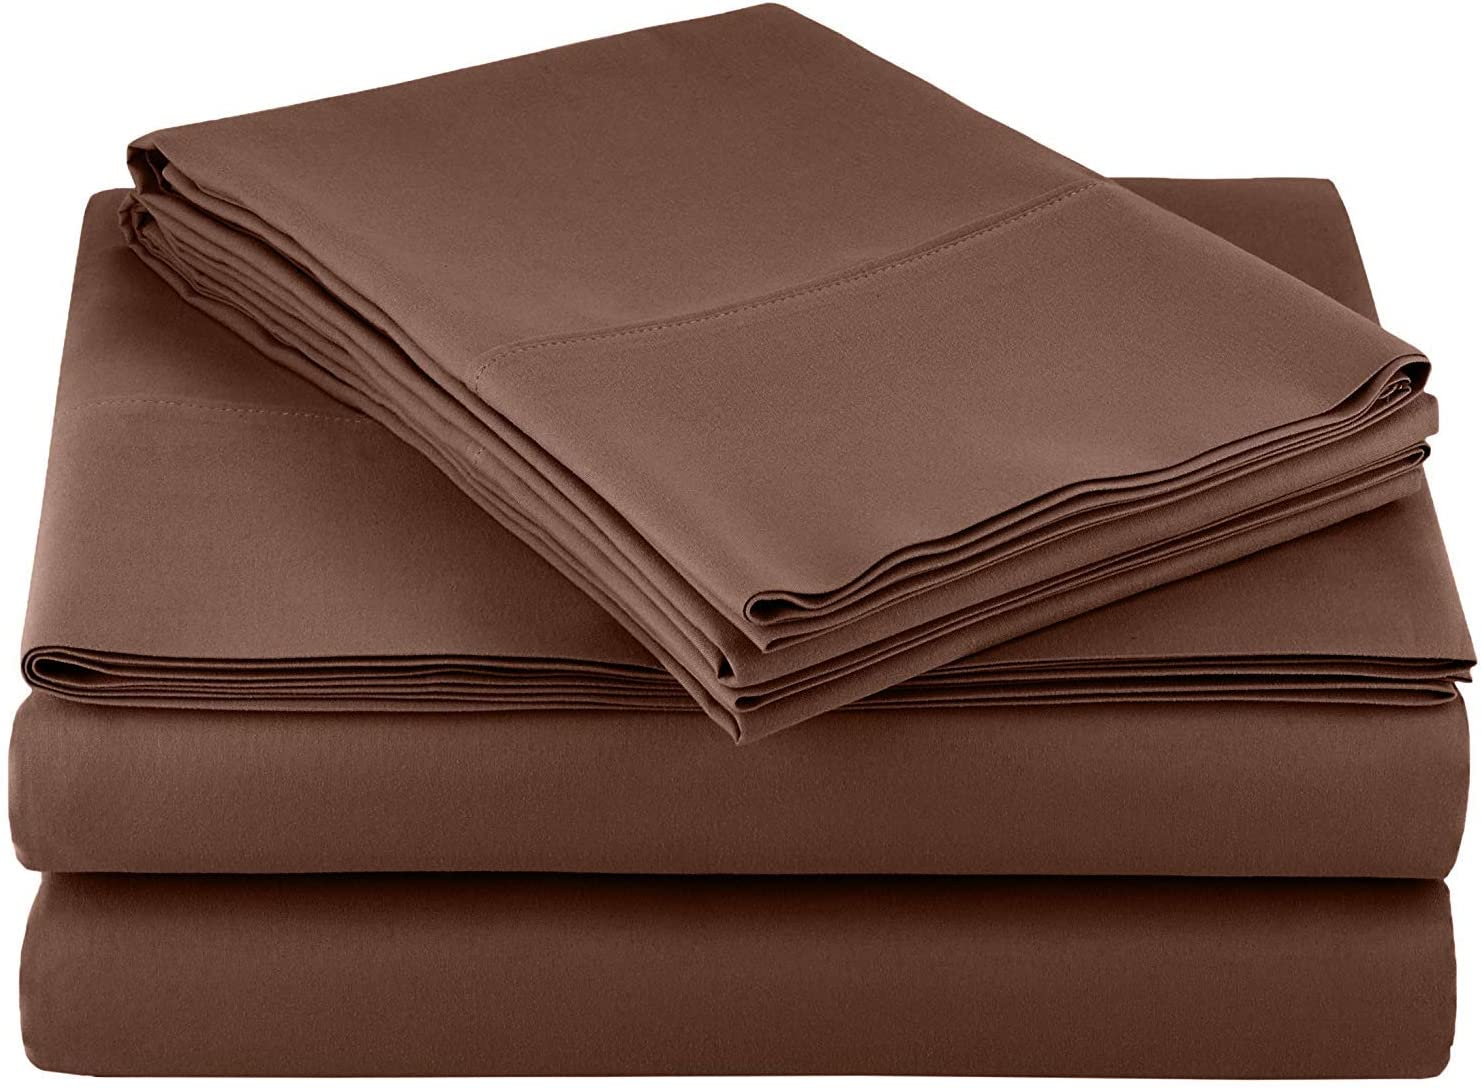 Ras Décor Linen Sheets Daily bargain sale for 42 Camper Motorhomes Beds Special Campaign RV